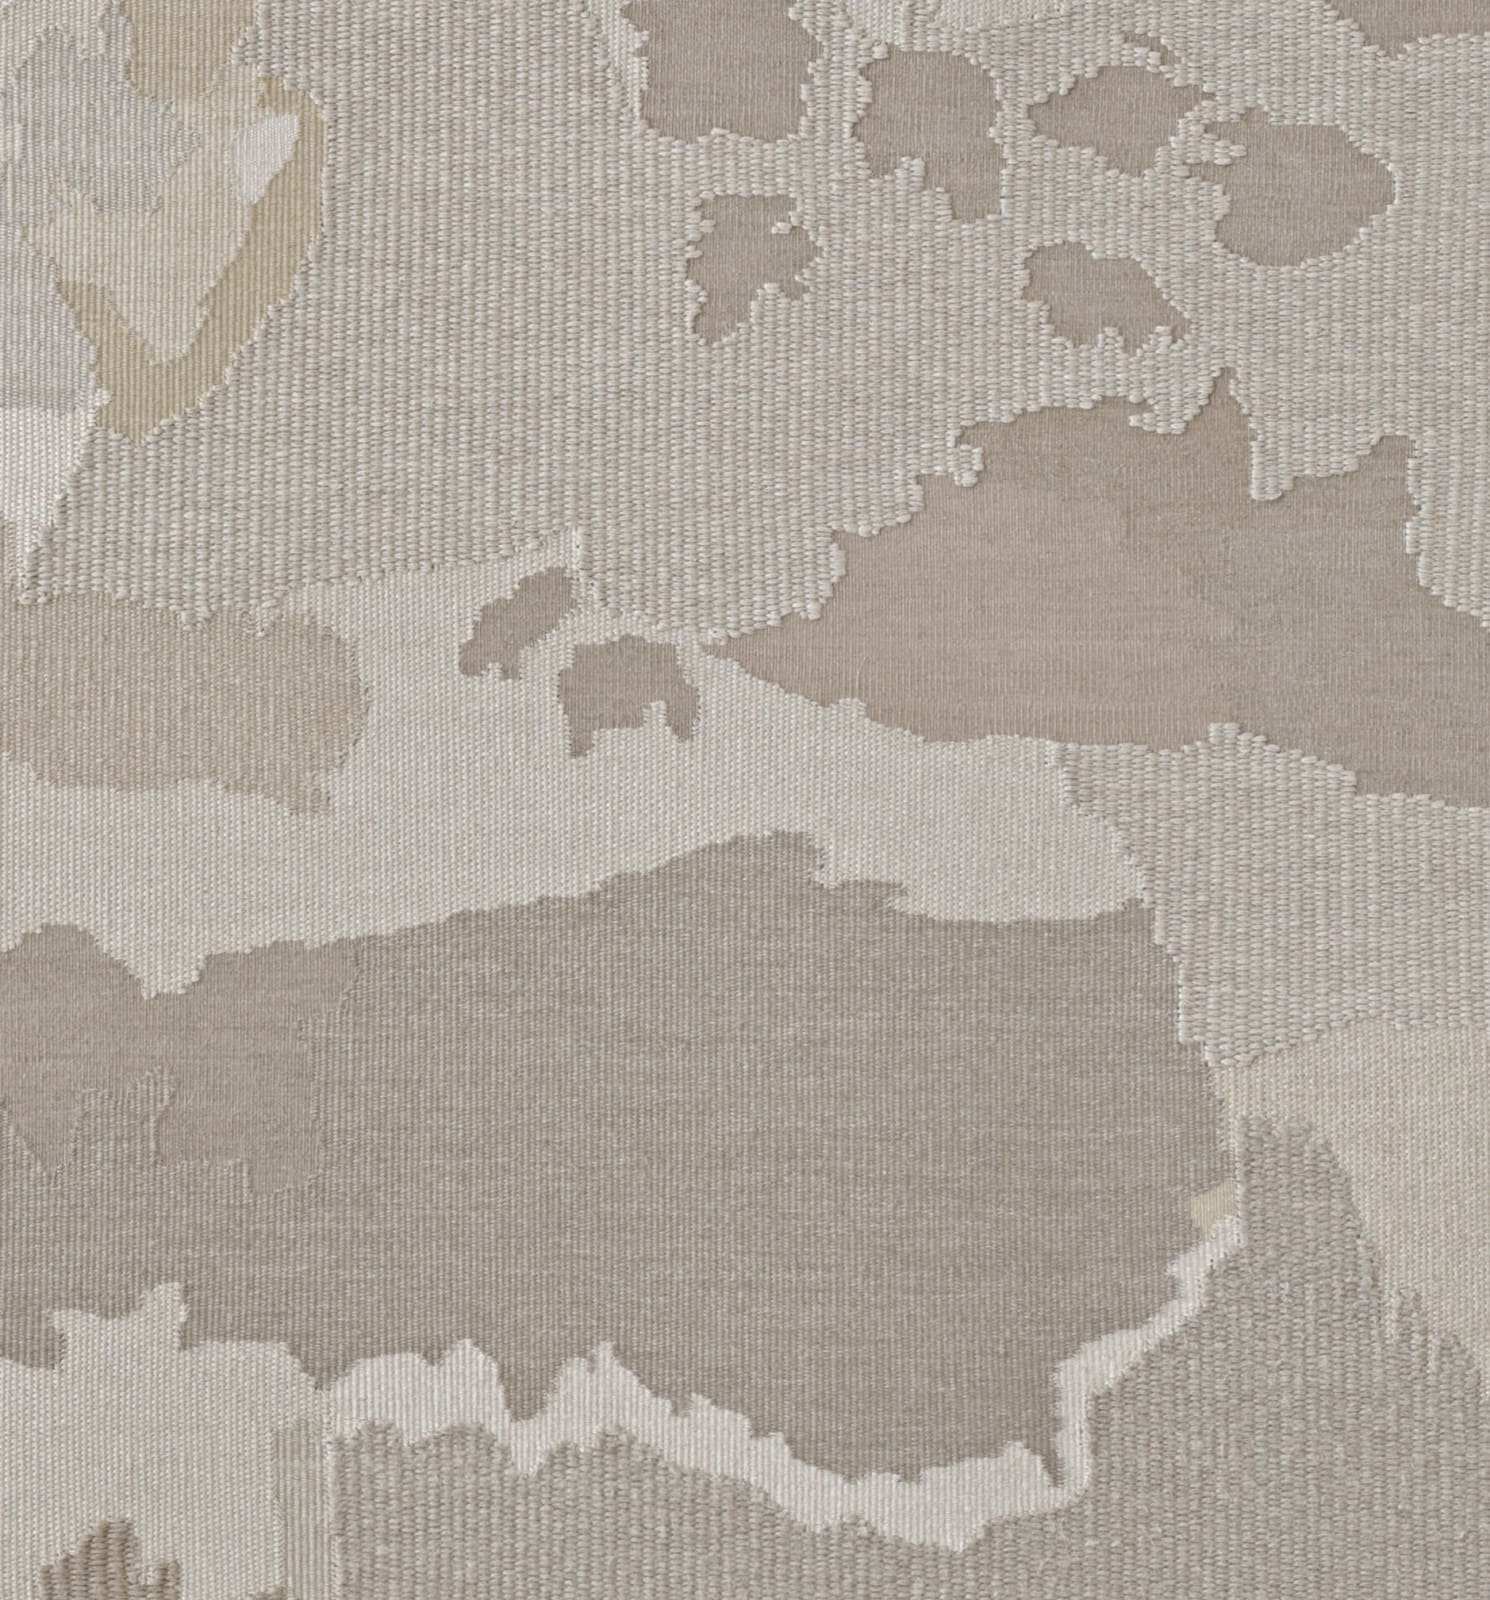 "<p>Andreas Eriksson, <em>Weissensee No. 7</em>, 2018. Detail.</p><h3>""Territories of the finished tapestries might be distinguished by a particular knotted texture or the stands of long fibre sprouting from the surface. Andreas has described the tapestries as 'existential landscapes'. We might also see them as a conceptual extension of painting in which the picture migrates to the canvas itself."" </h3><p><strong>- Hettie Judah on Andreas Eriksson, 2020</strong></p>"